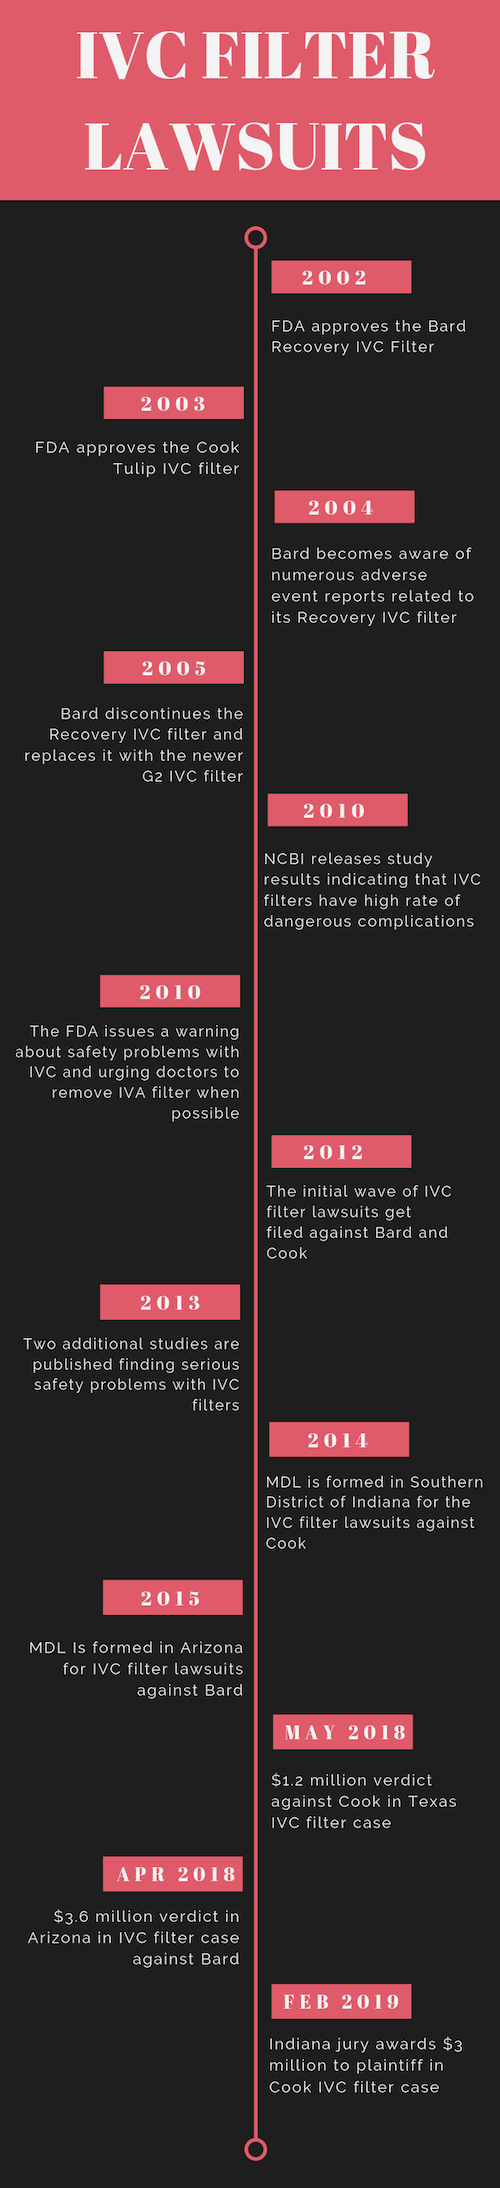 IVC Filter Lawsuits Infographic